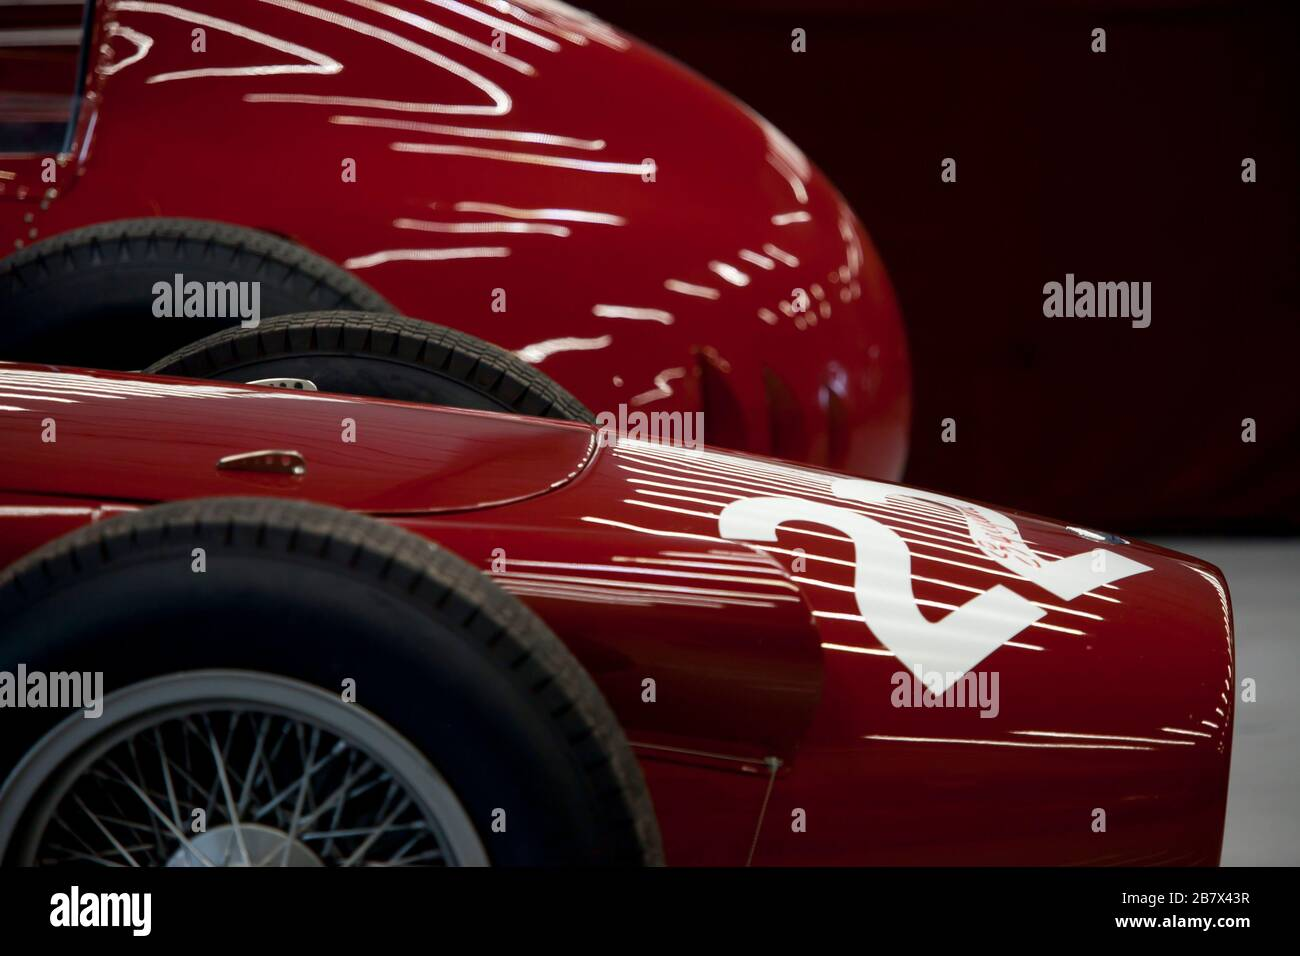 Classic red racing car no 22 Stock Photo